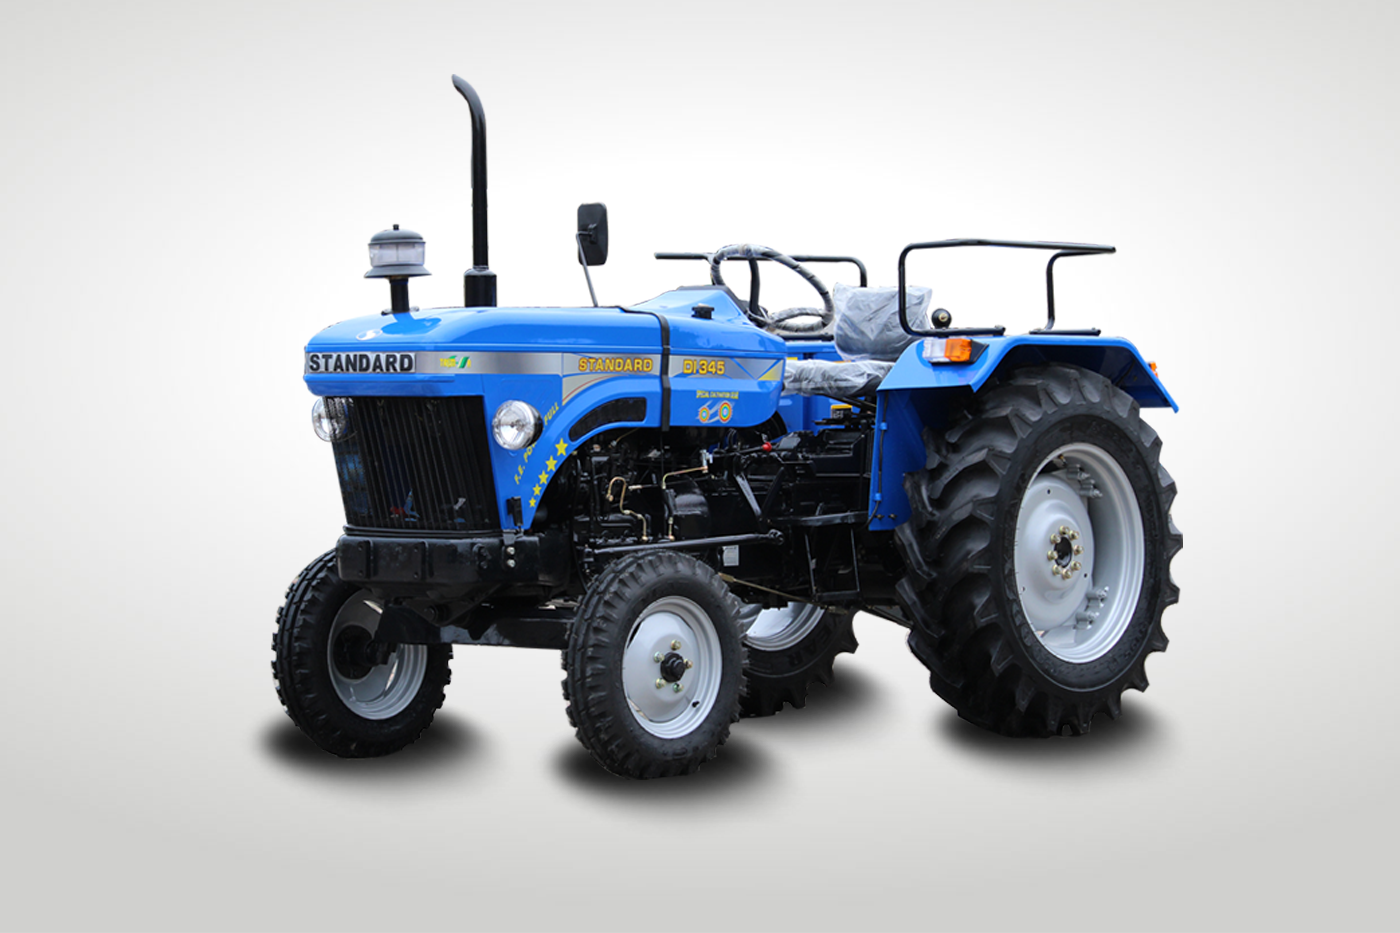 Standard DI 345 Tractor On-road Price in India. Standard DI 345 Tractor features and Specification, Review Full Videos